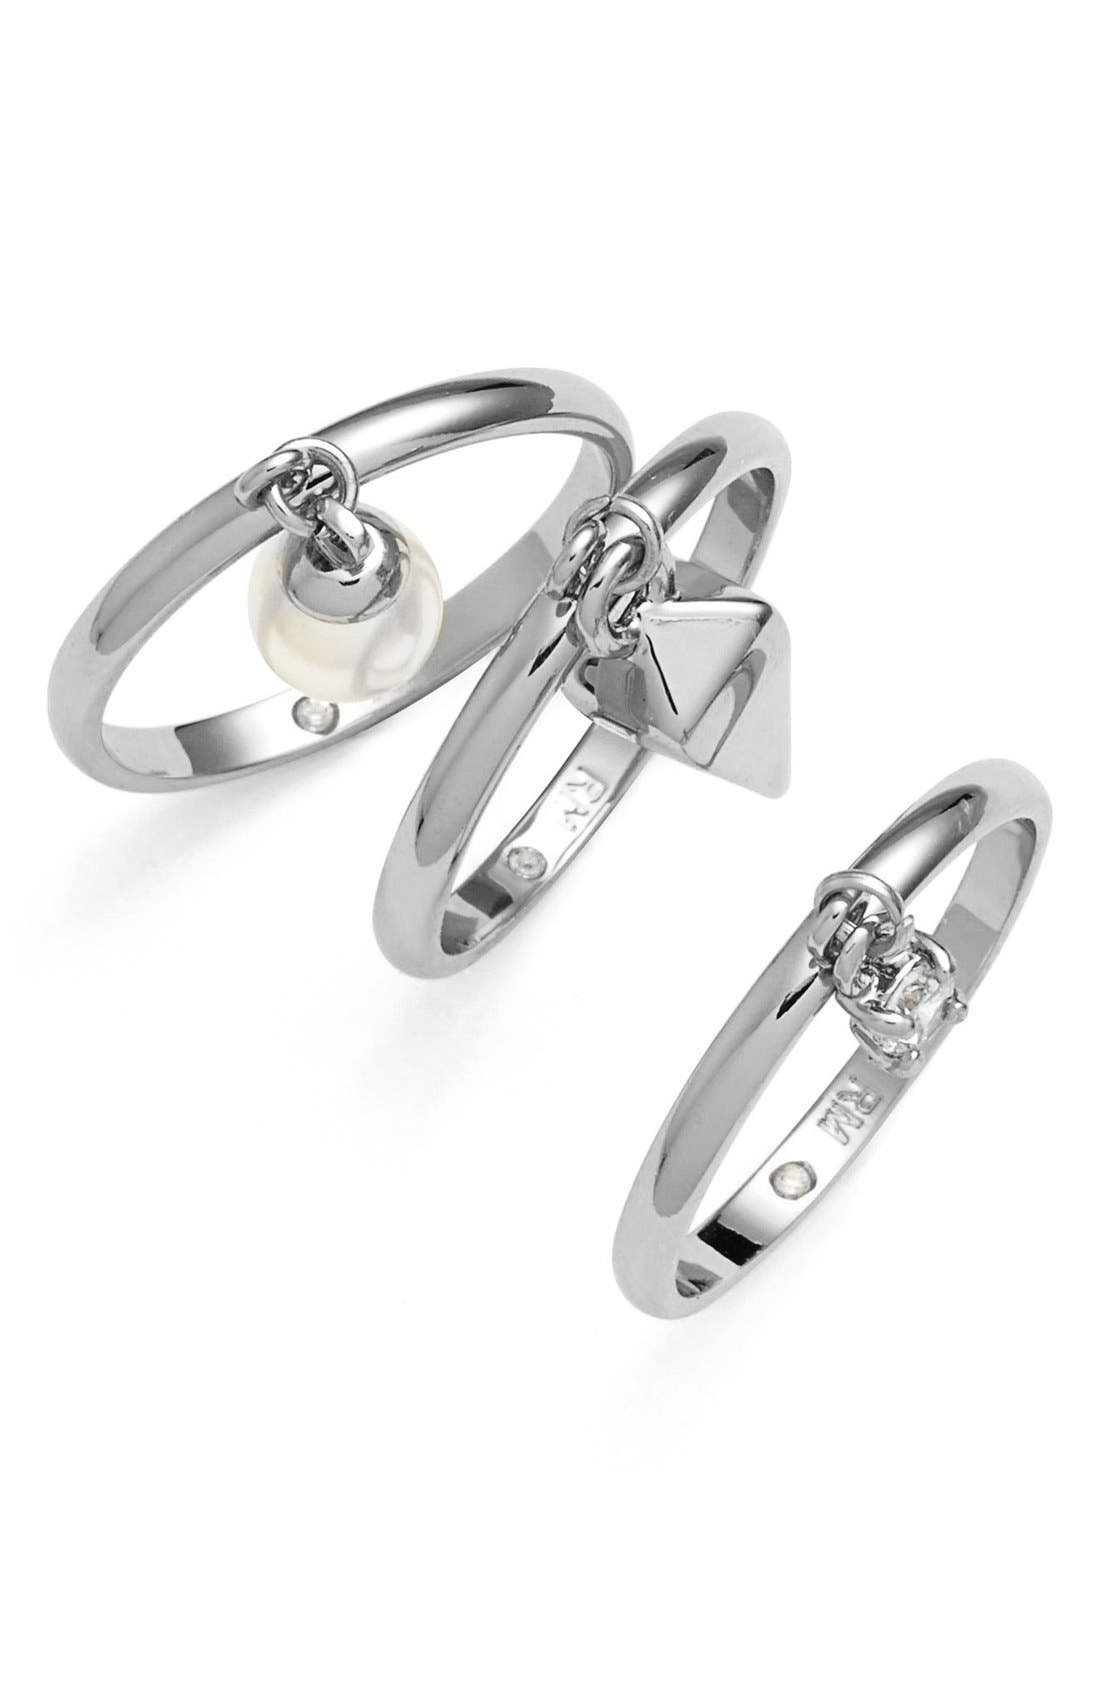 Alternate Image 1 Selected - Rebecca Minkoff 'Jewel Box' Stackable Charm Rings (Set of 3)